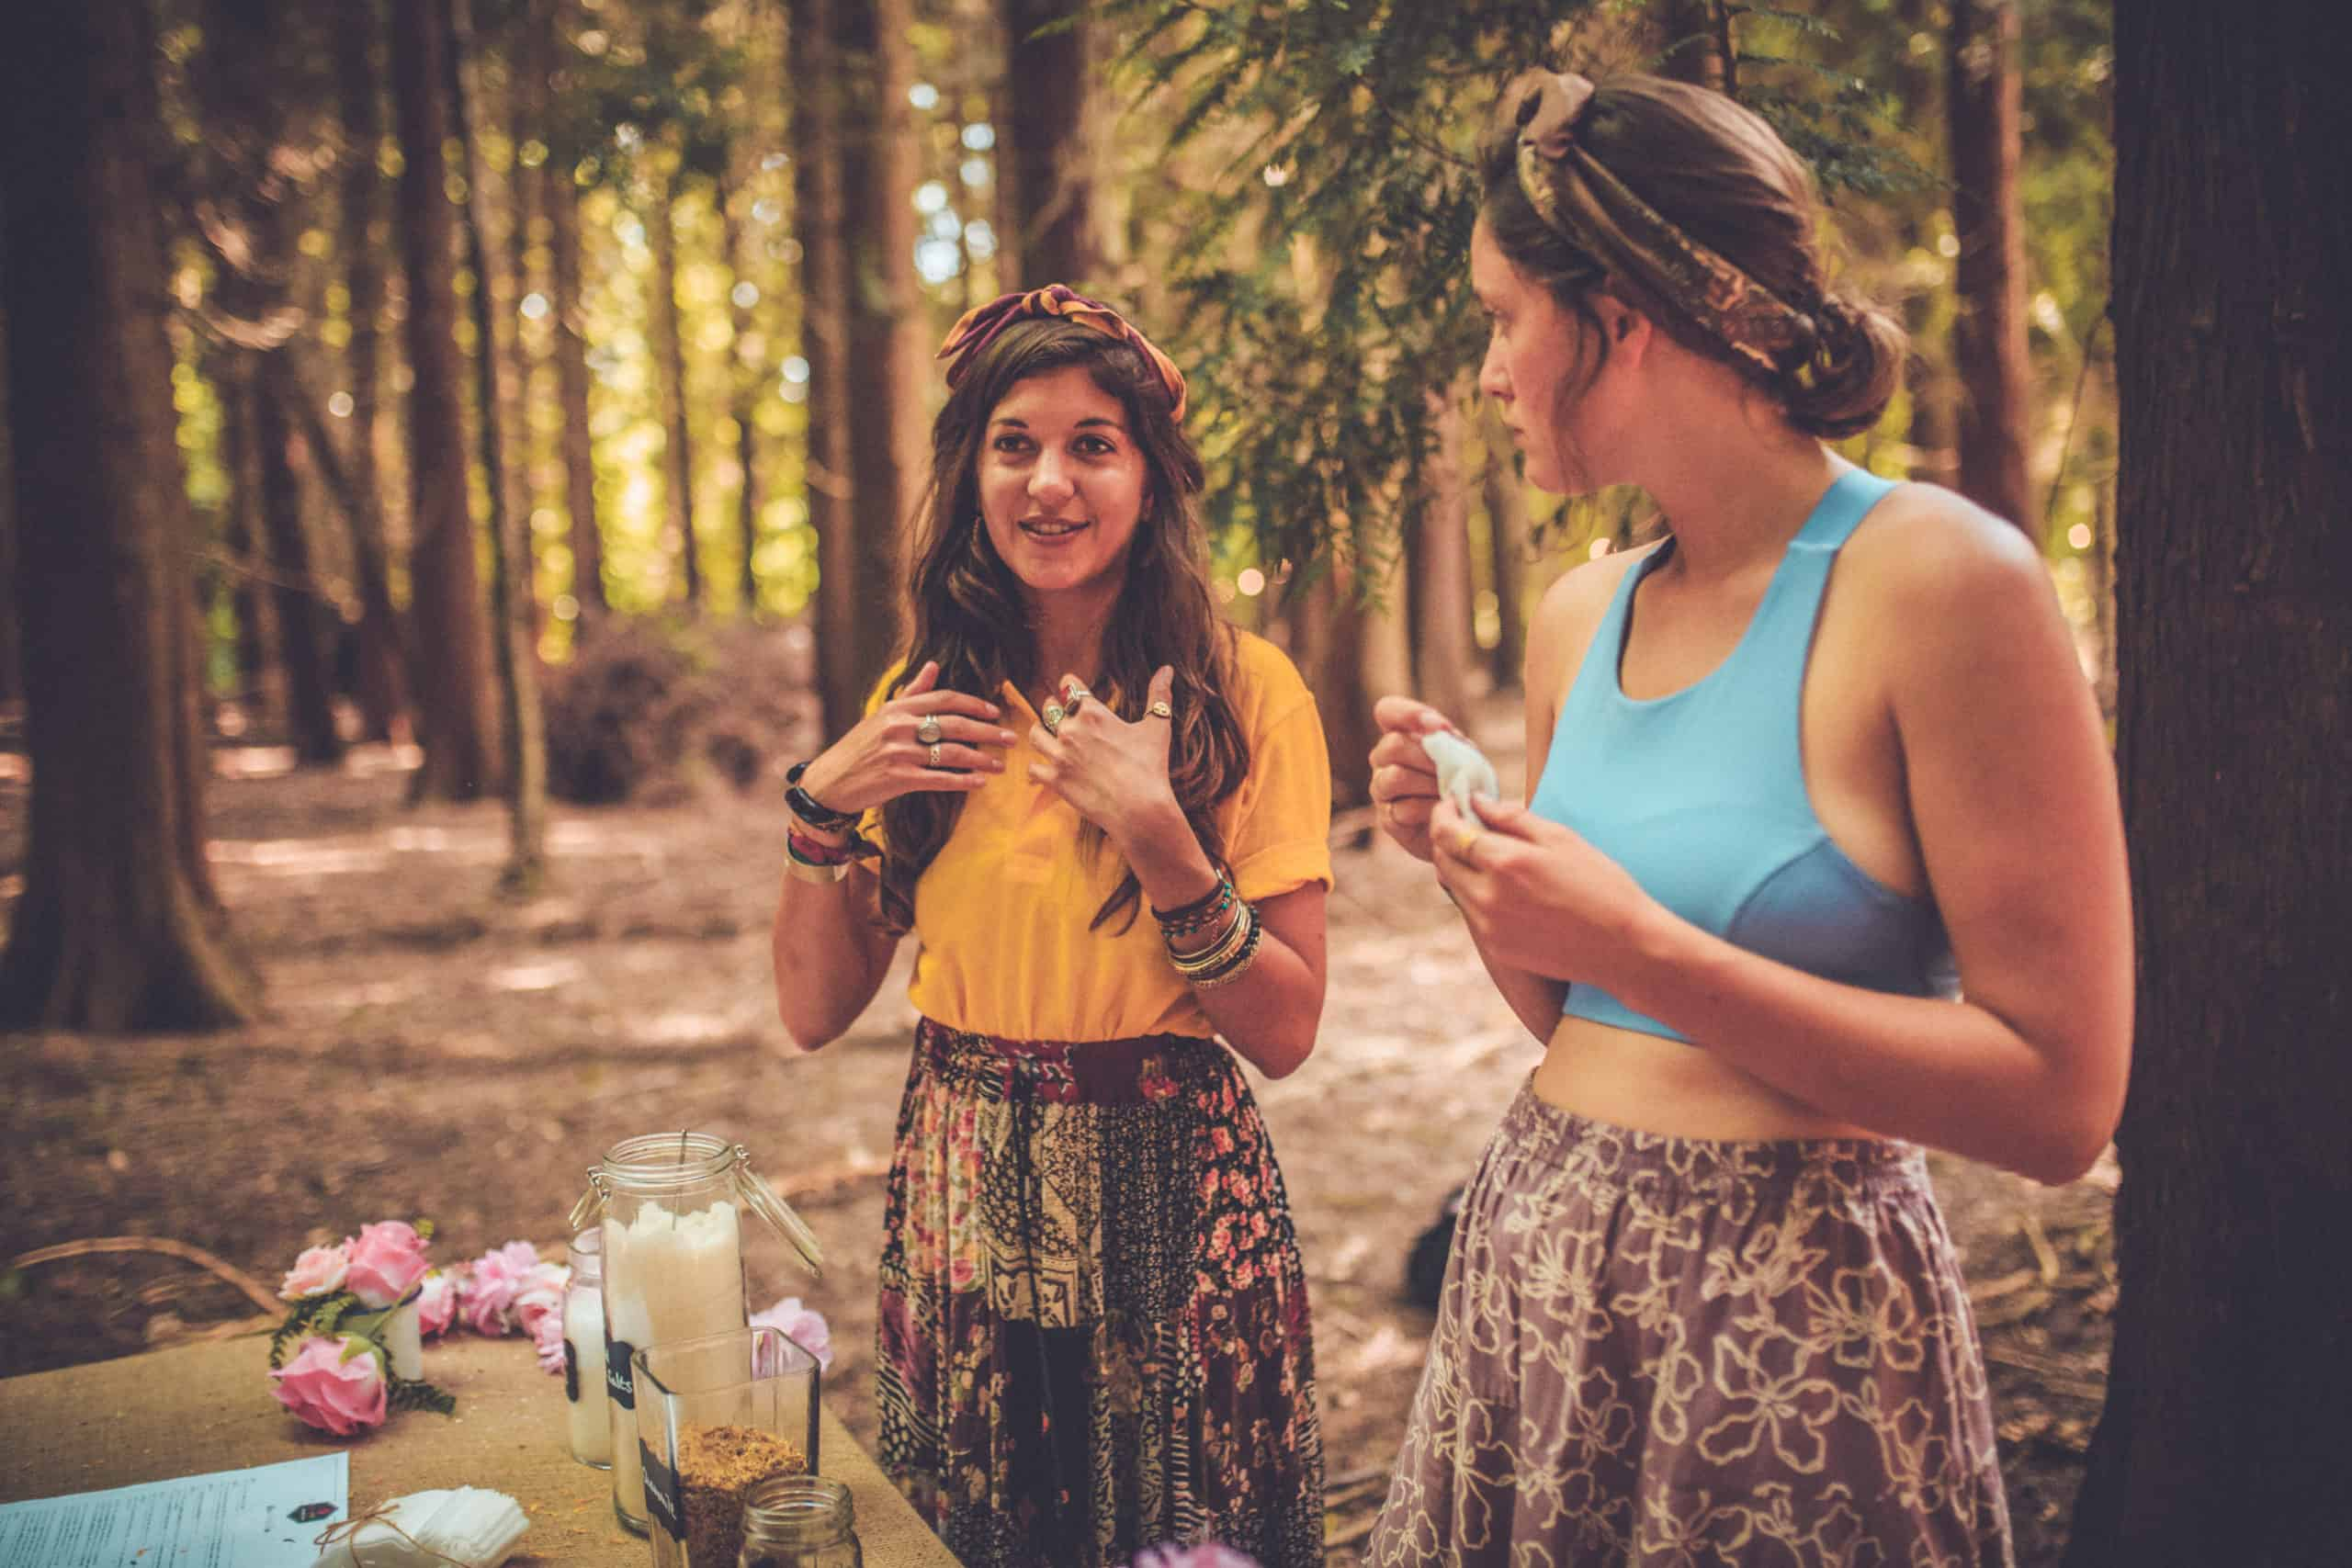 Girls at the Camp Wildfire woodland Apothecary. A summer weekend break in a forest near London and Kent. An outdoor woodland retreat featuring adventure activities, live music, DJs, parties and camping. Half summer adventure activity camp, half music festival, for adults only.